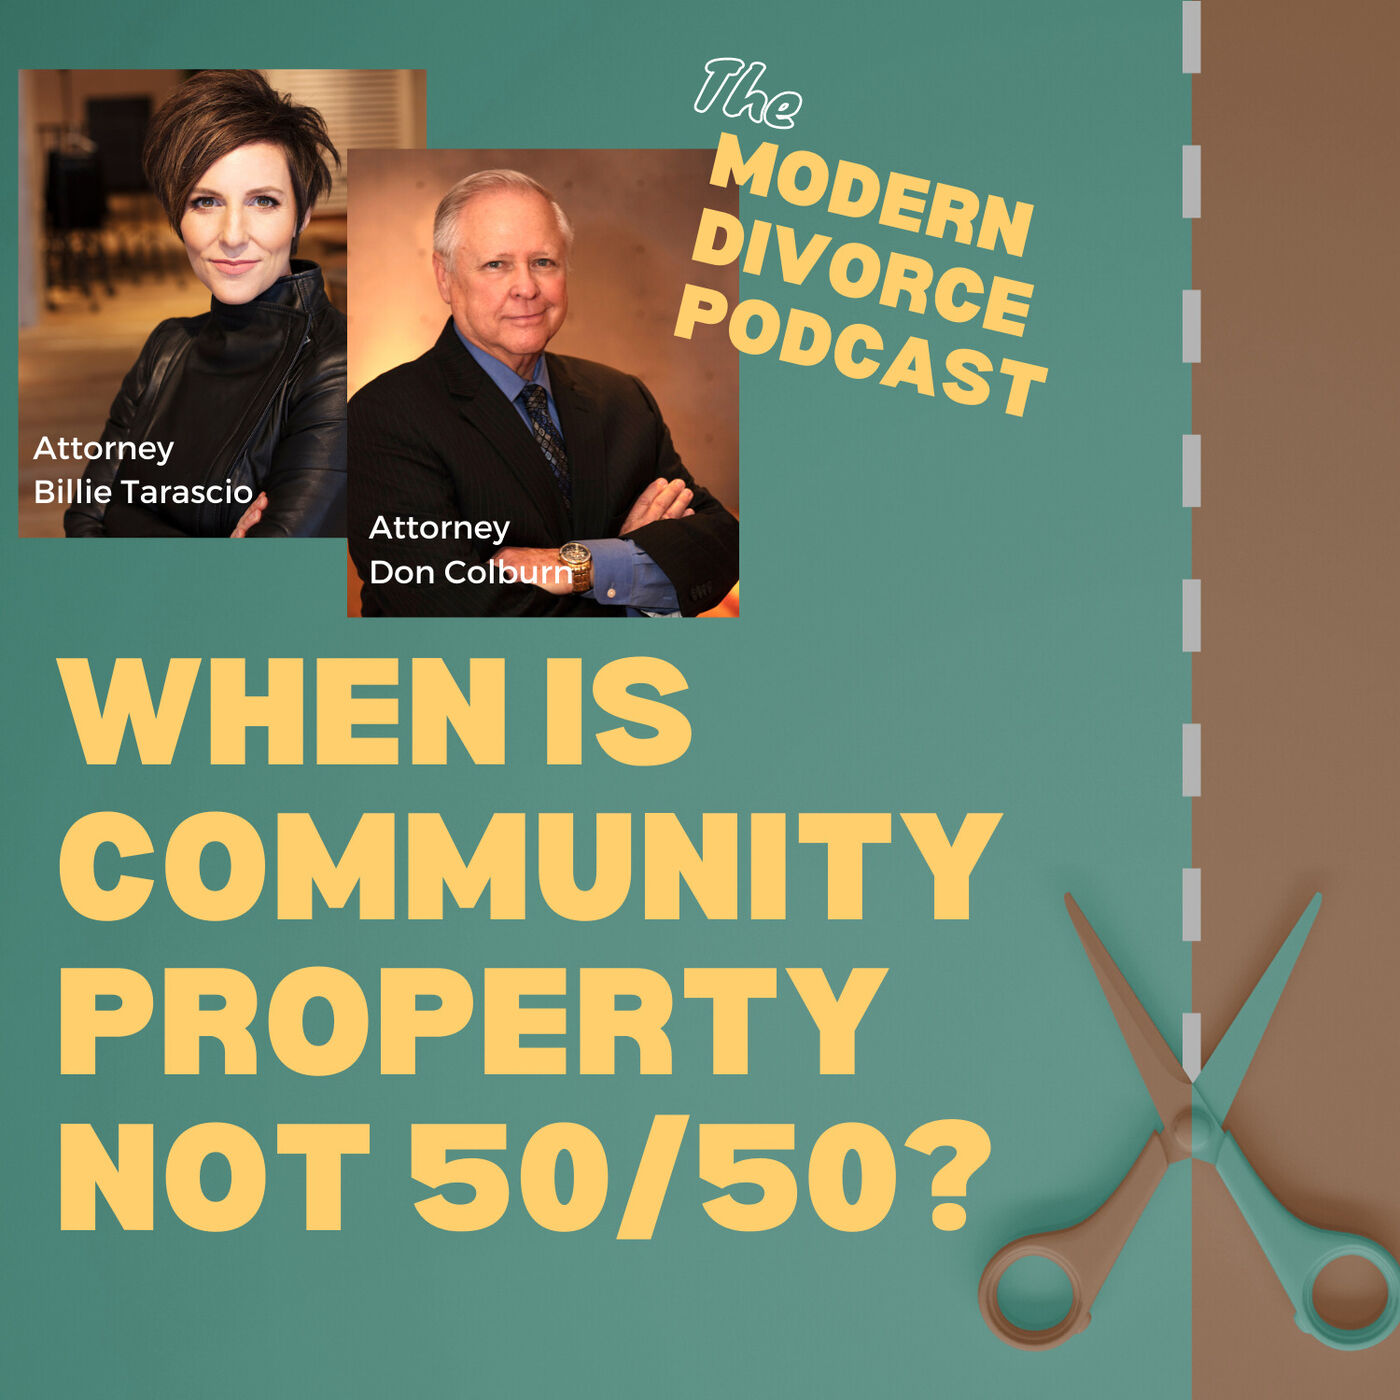 When is community property NOT 50-50?